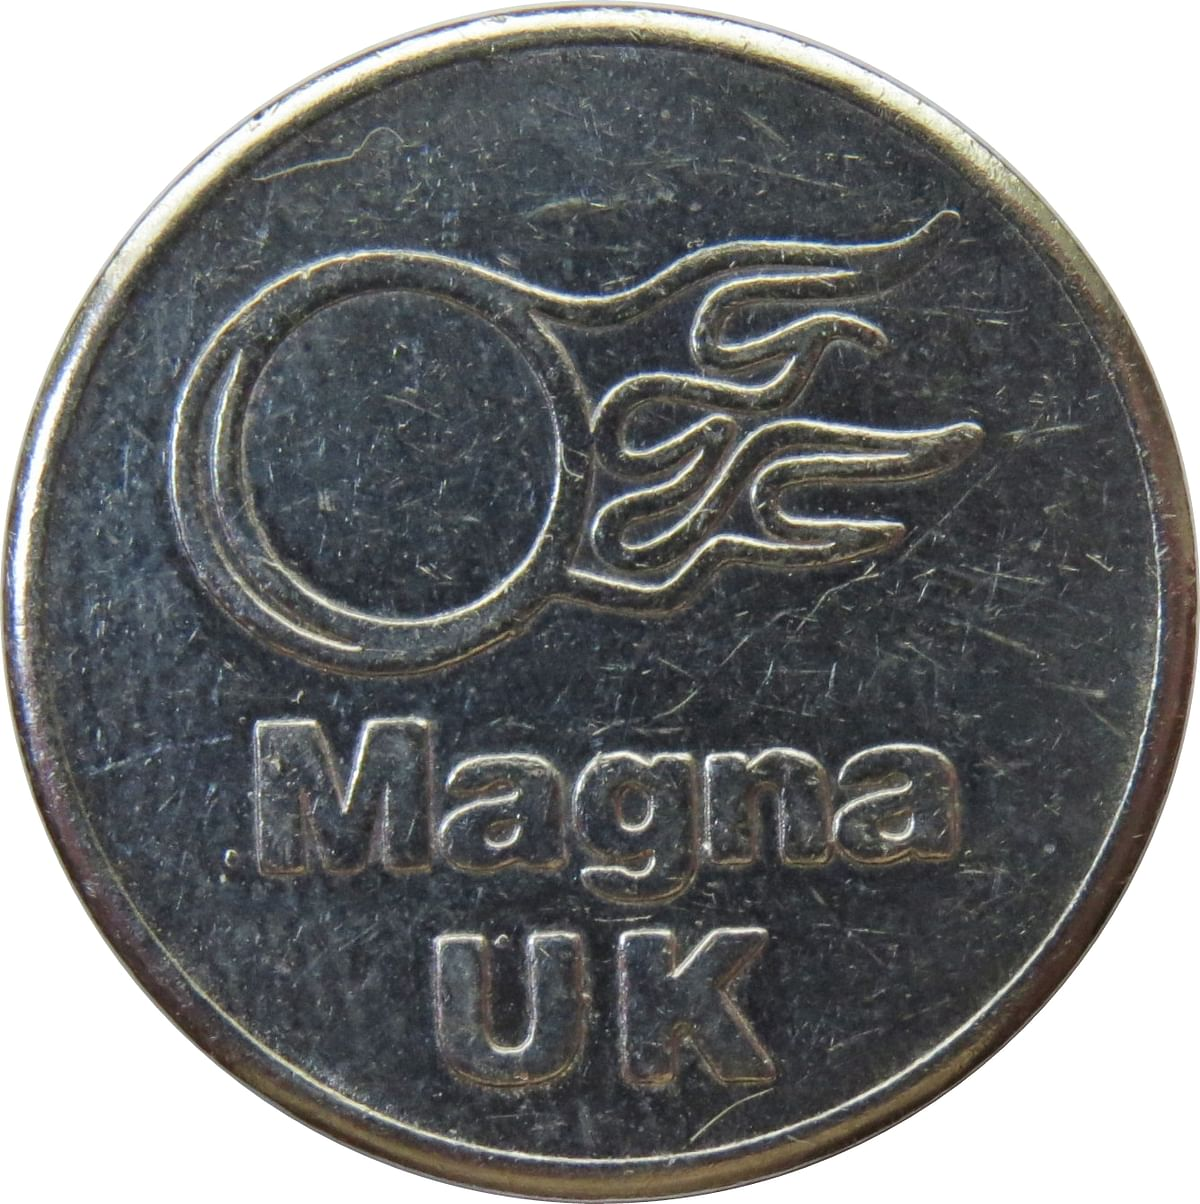 Magna Opens Plant in UK for Producing Lightweight Liftgates